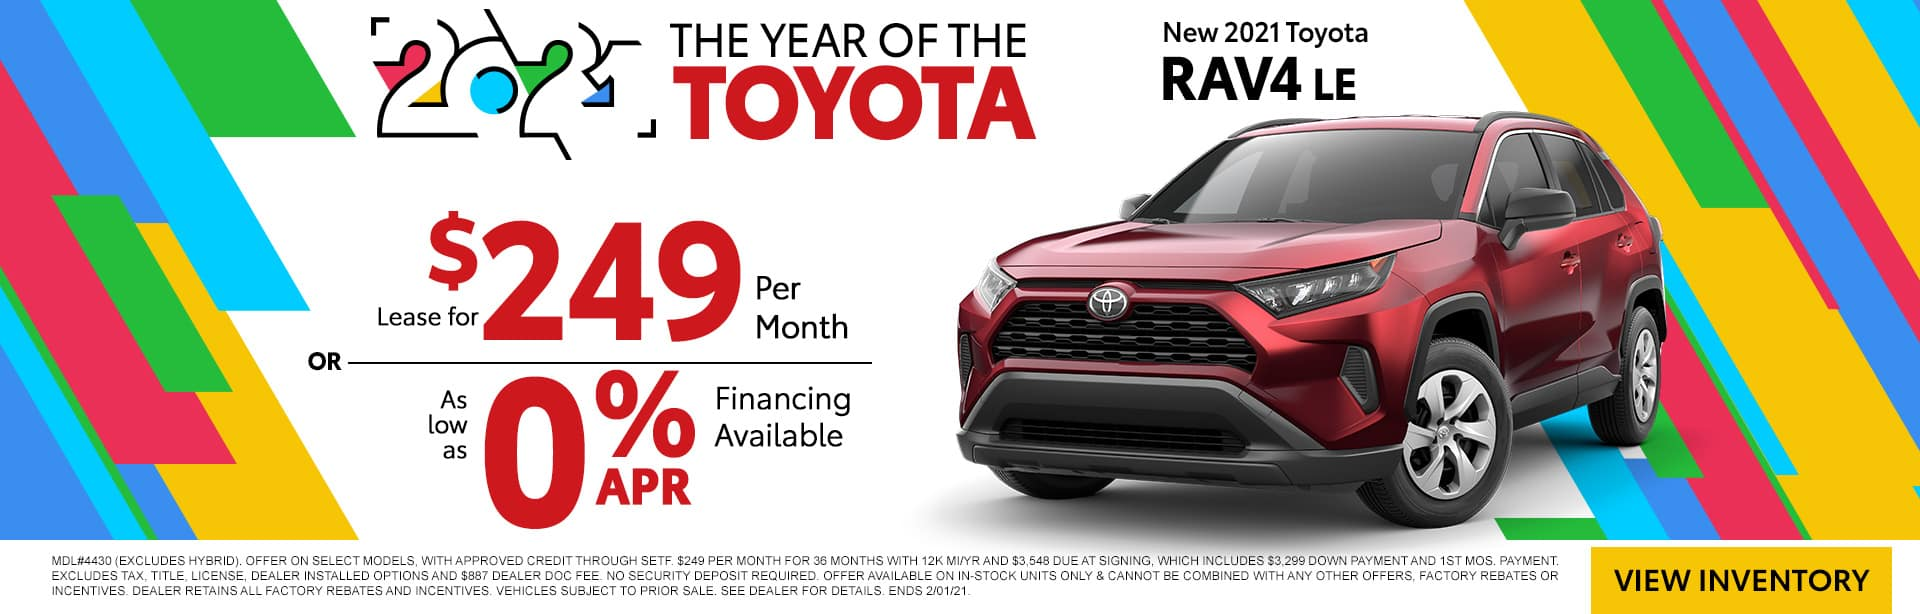 NEW 2021 TOYOTA RAV4 LE | THE YEAR OF THE TOYOTA